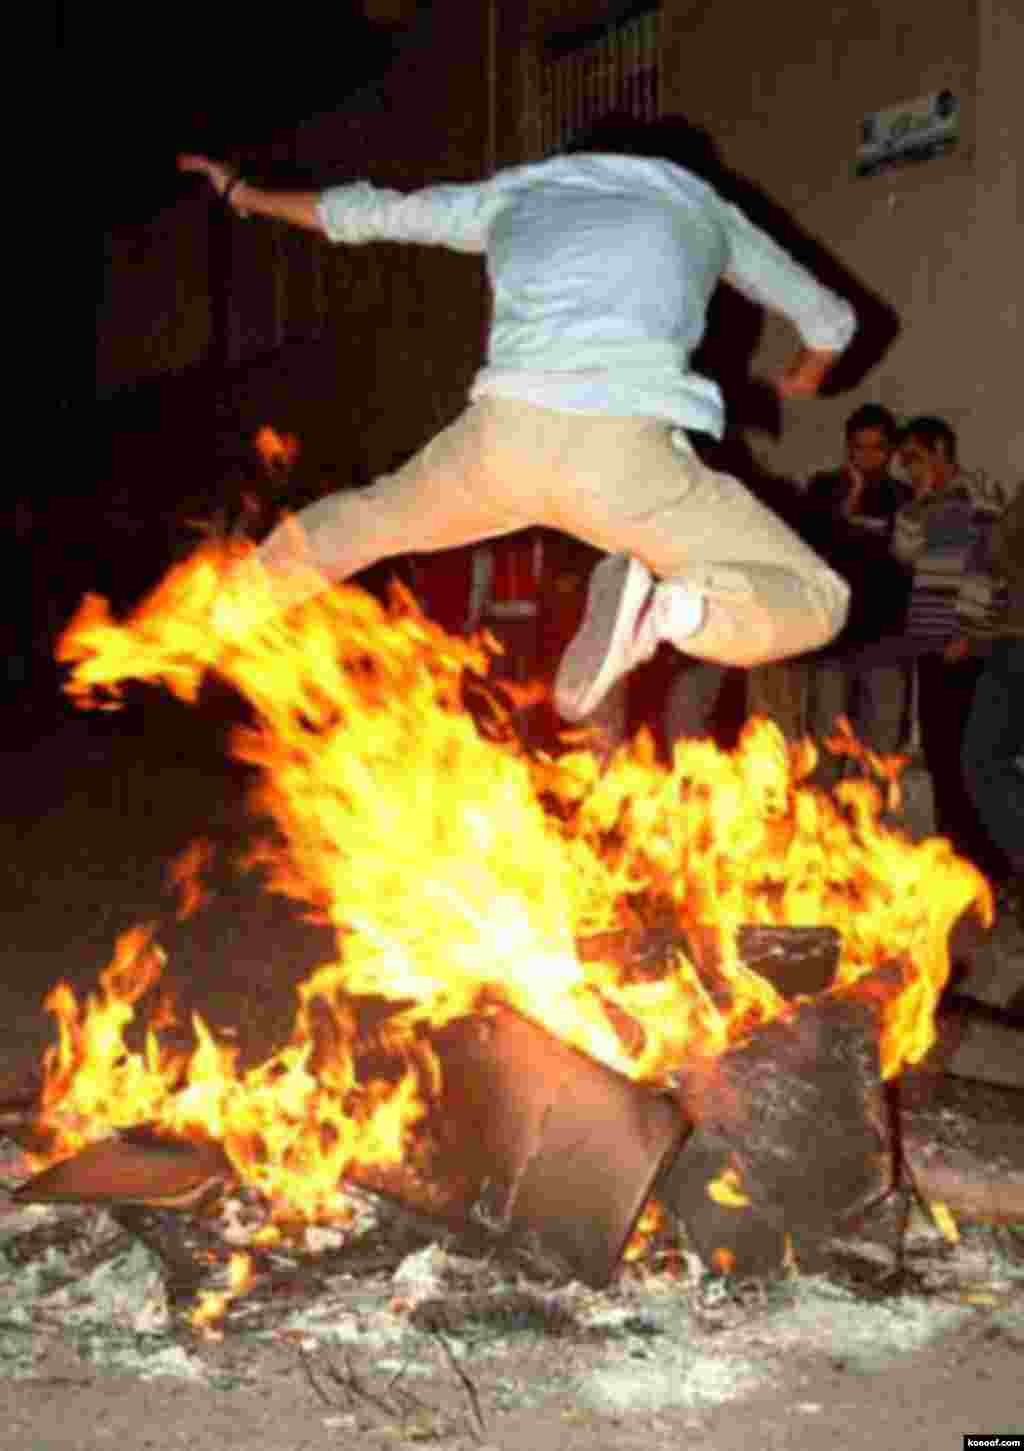 An Iranian boy jumps over a fire in an ancient festival called Chaharshanbe Suri (Wednesday Fire) on the last Wednesday prior to Norouz - http://www.kosoof.com/photo/00080-09-4shanbe-soori.jpg Noruz08